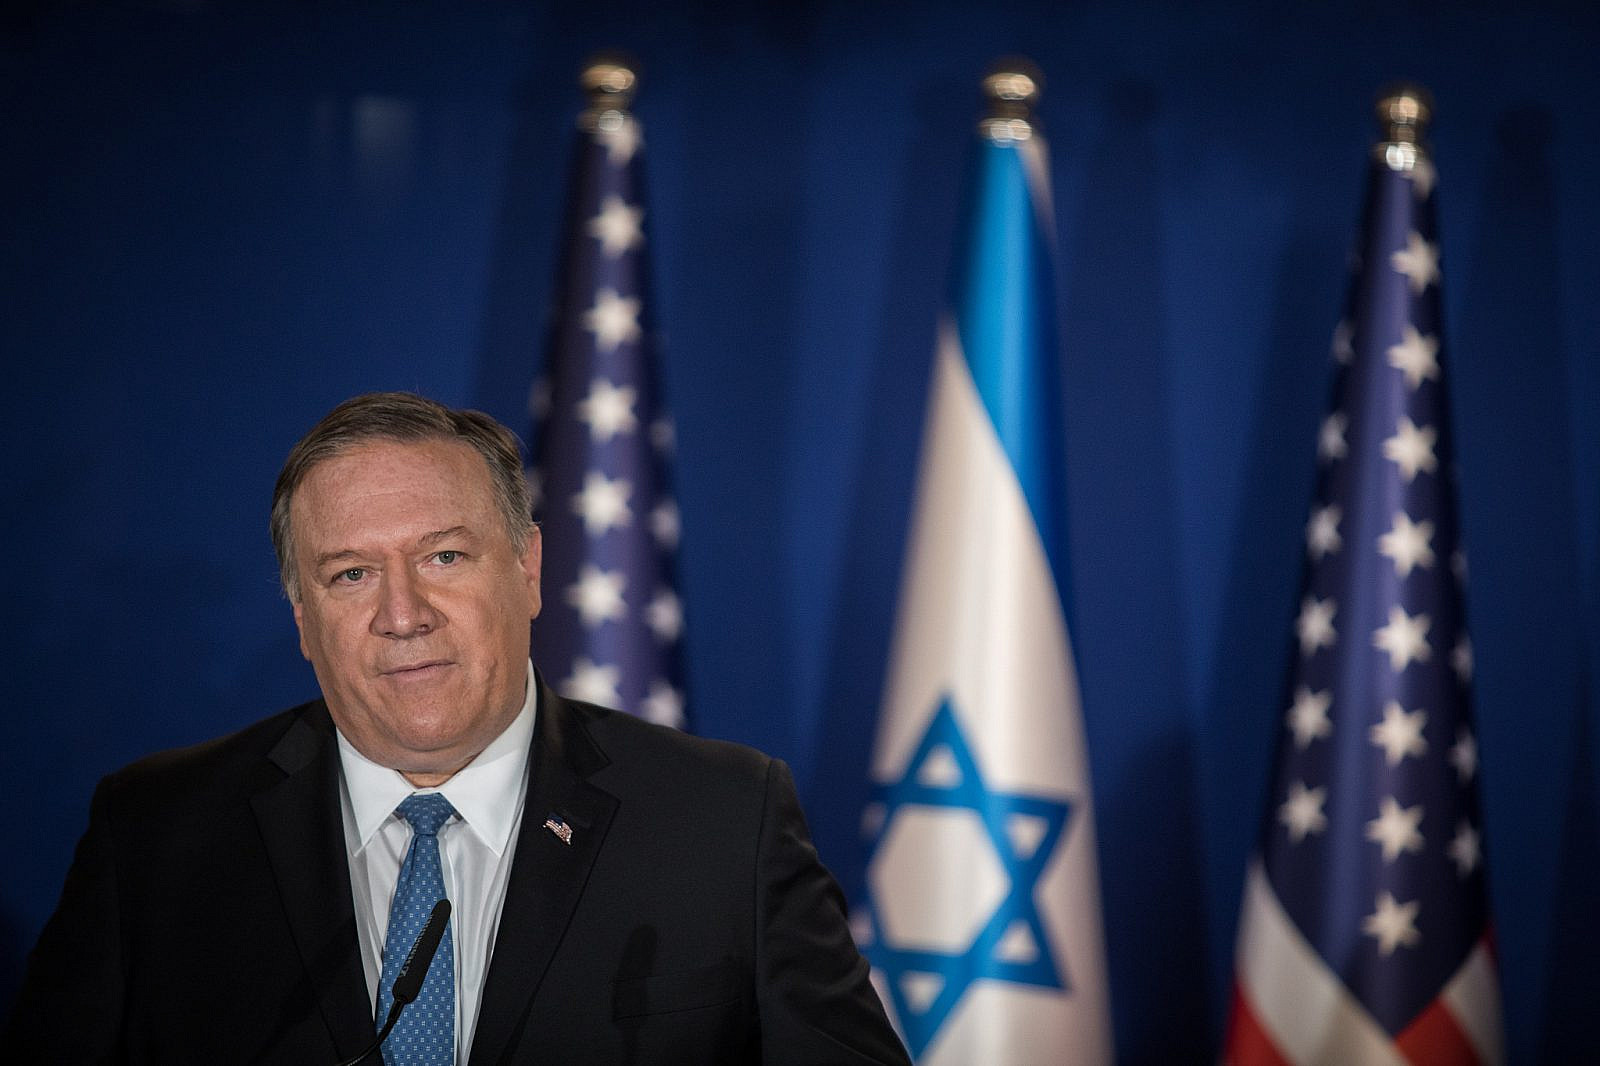 U.S. Secretary of State Mike Pompeo delivers joint statement at the residence of Israeli Prime Minister Benjamin Netanyahu in Jerusalem on March 20, 2019. (Hadas Parush/Flash90)